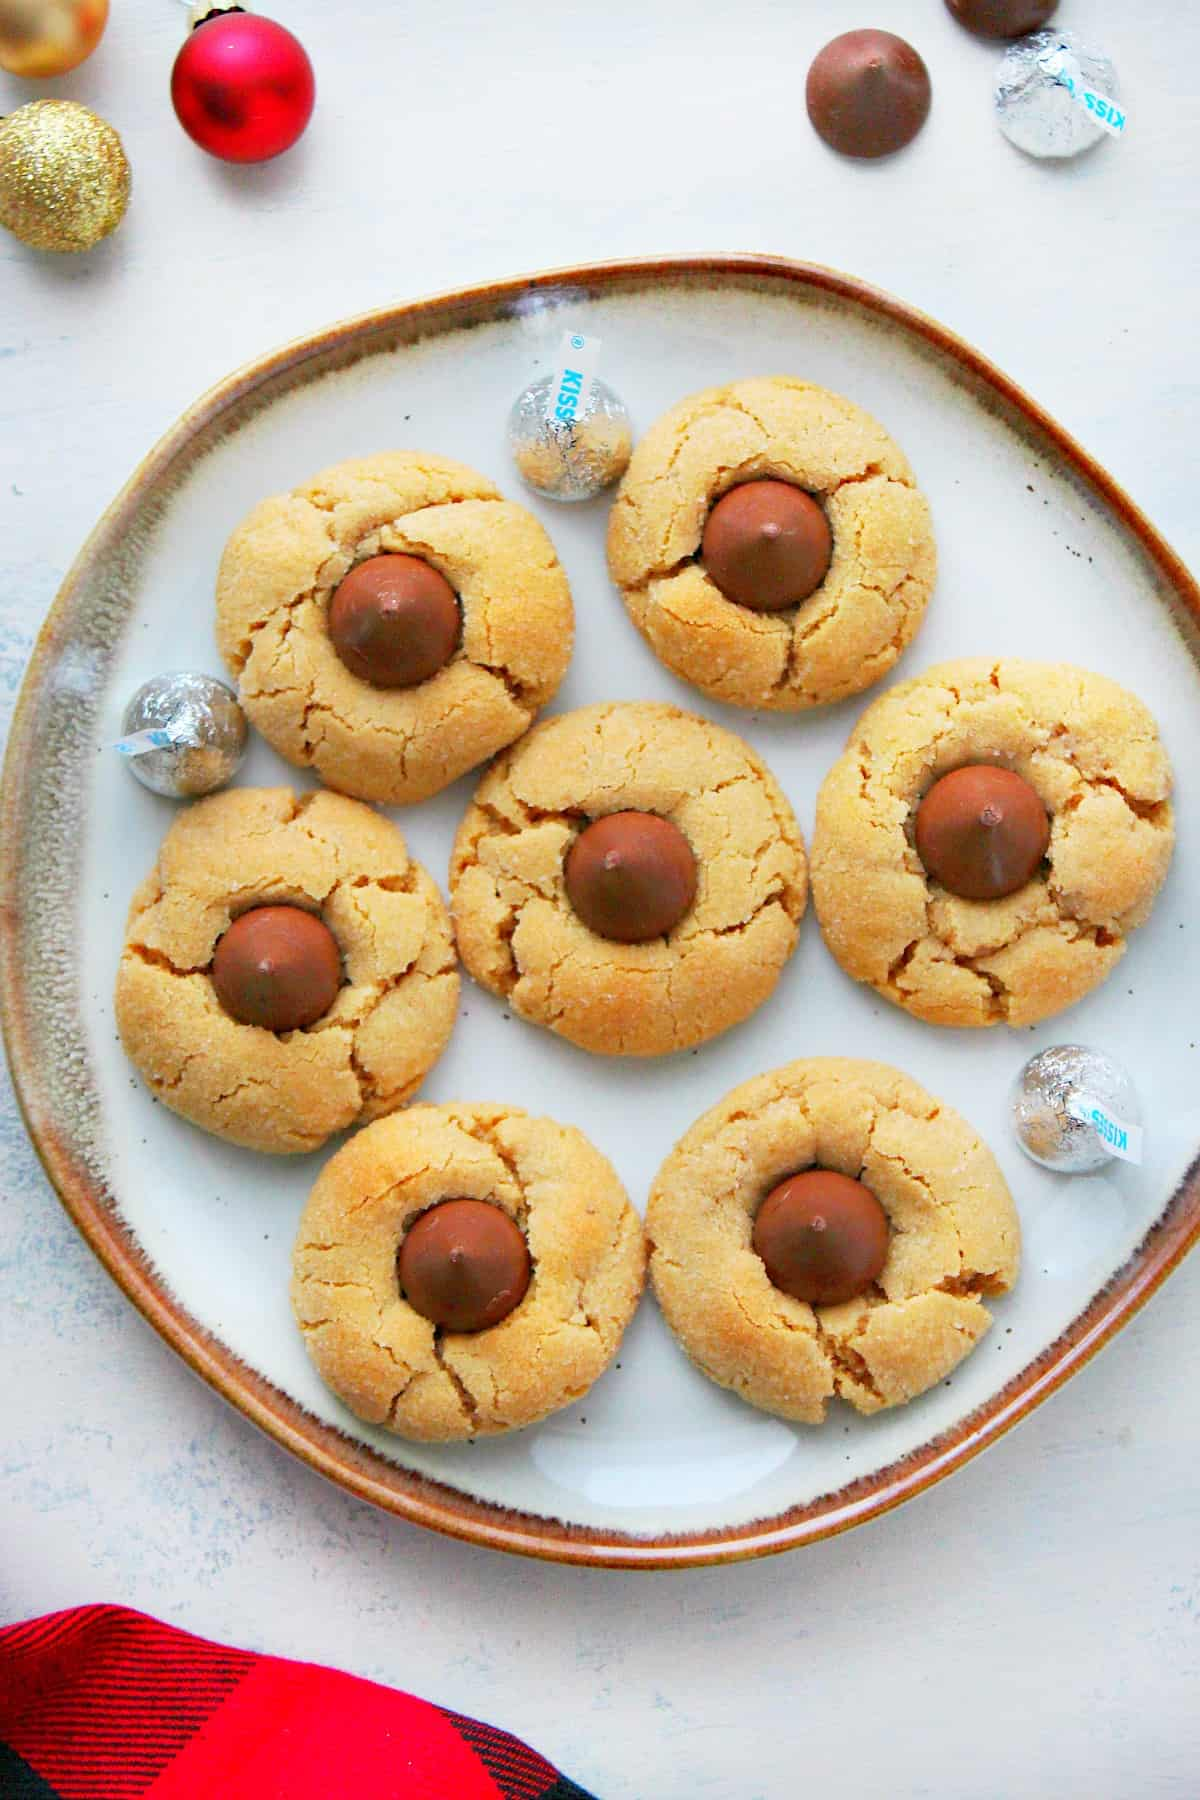 Peanut Butter Blossom Cookies A Peanut Butter Blossom Cookies